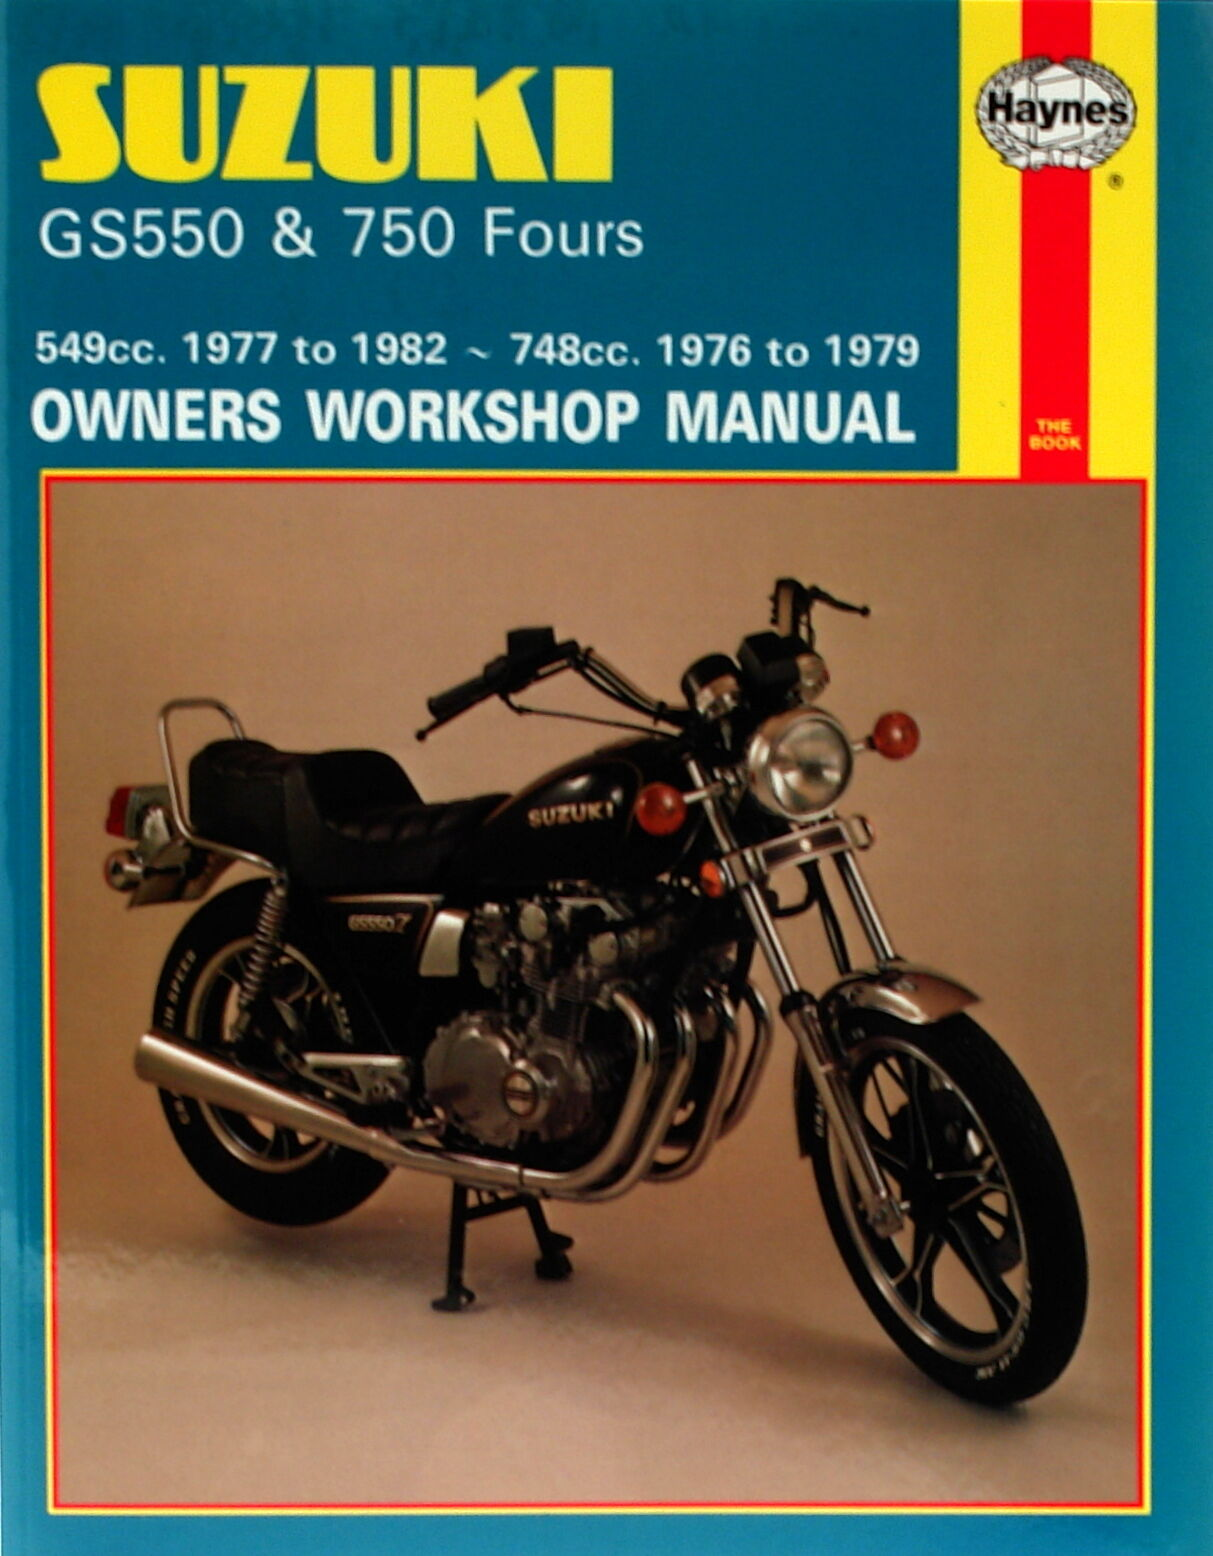 0363 Haynes Suzuki GS550 (1977 - 1982) & GS750 Fours (1976 - 1979 1 of  1FREE Shipping See More